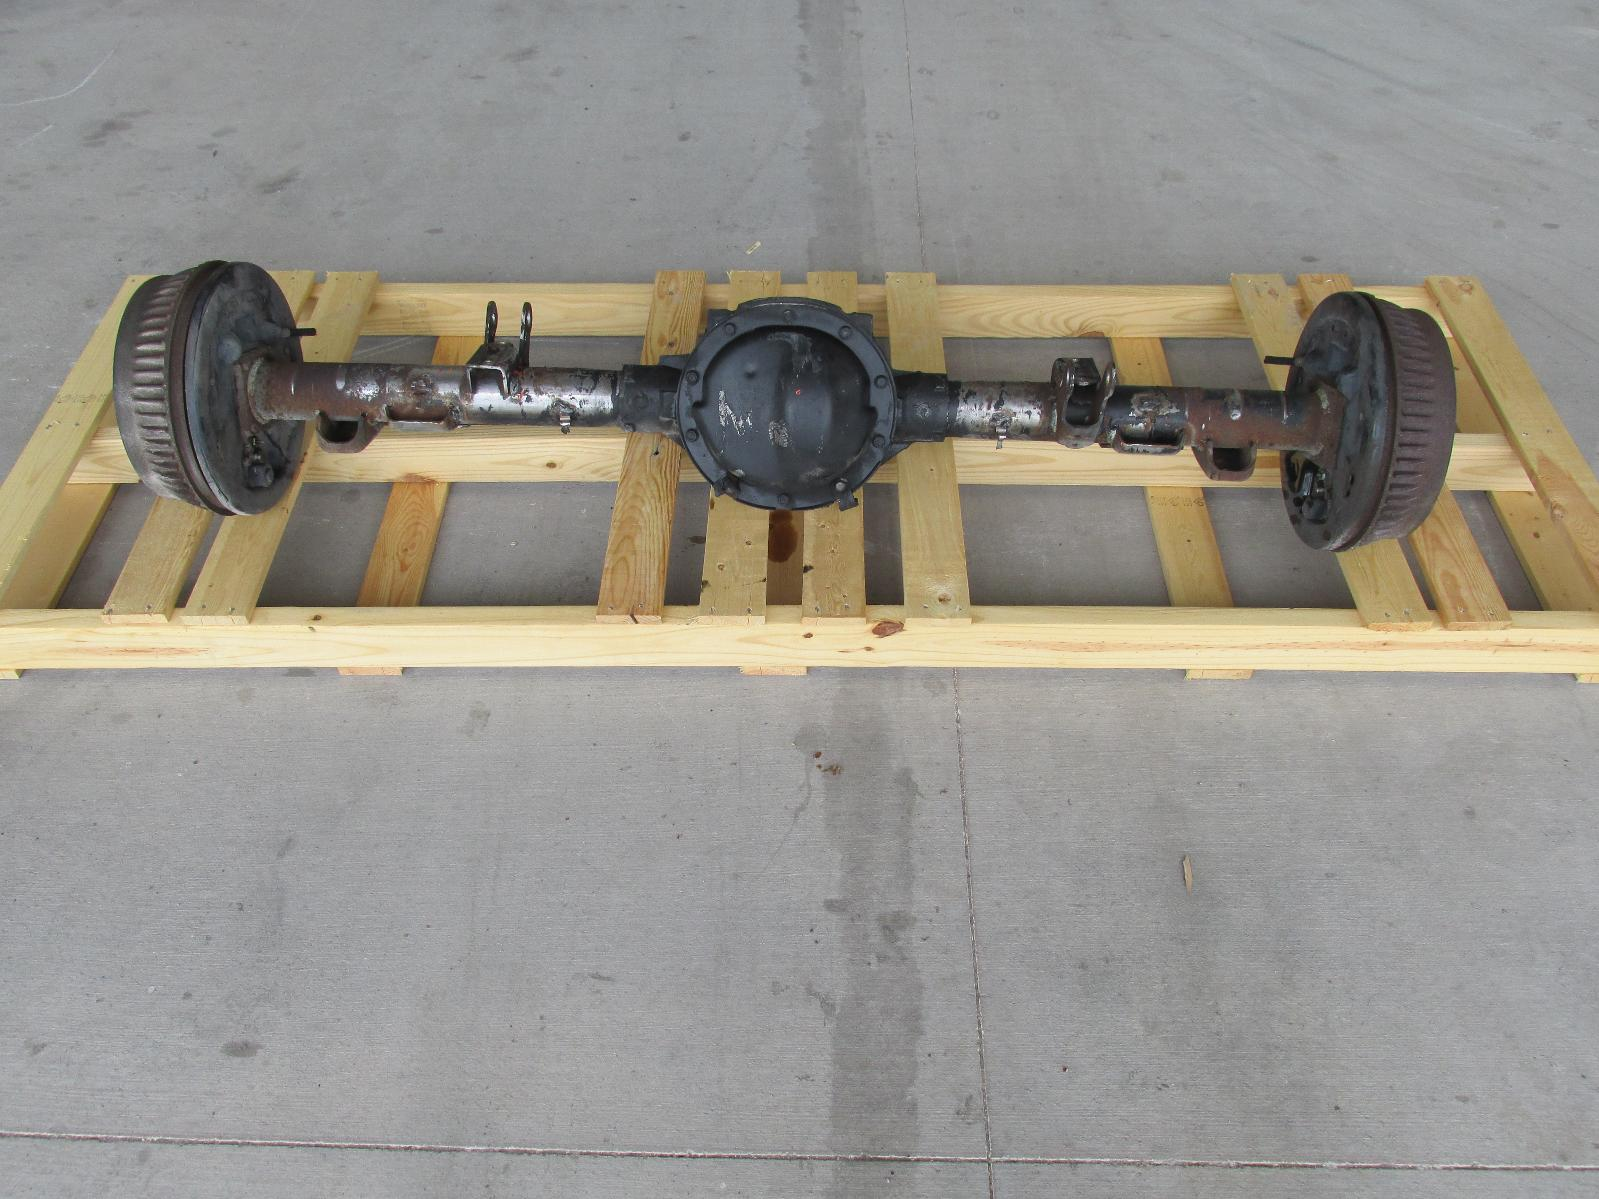 1995 1999 Chevy Suburban Silverado 1500 4x2 Rear End Axle